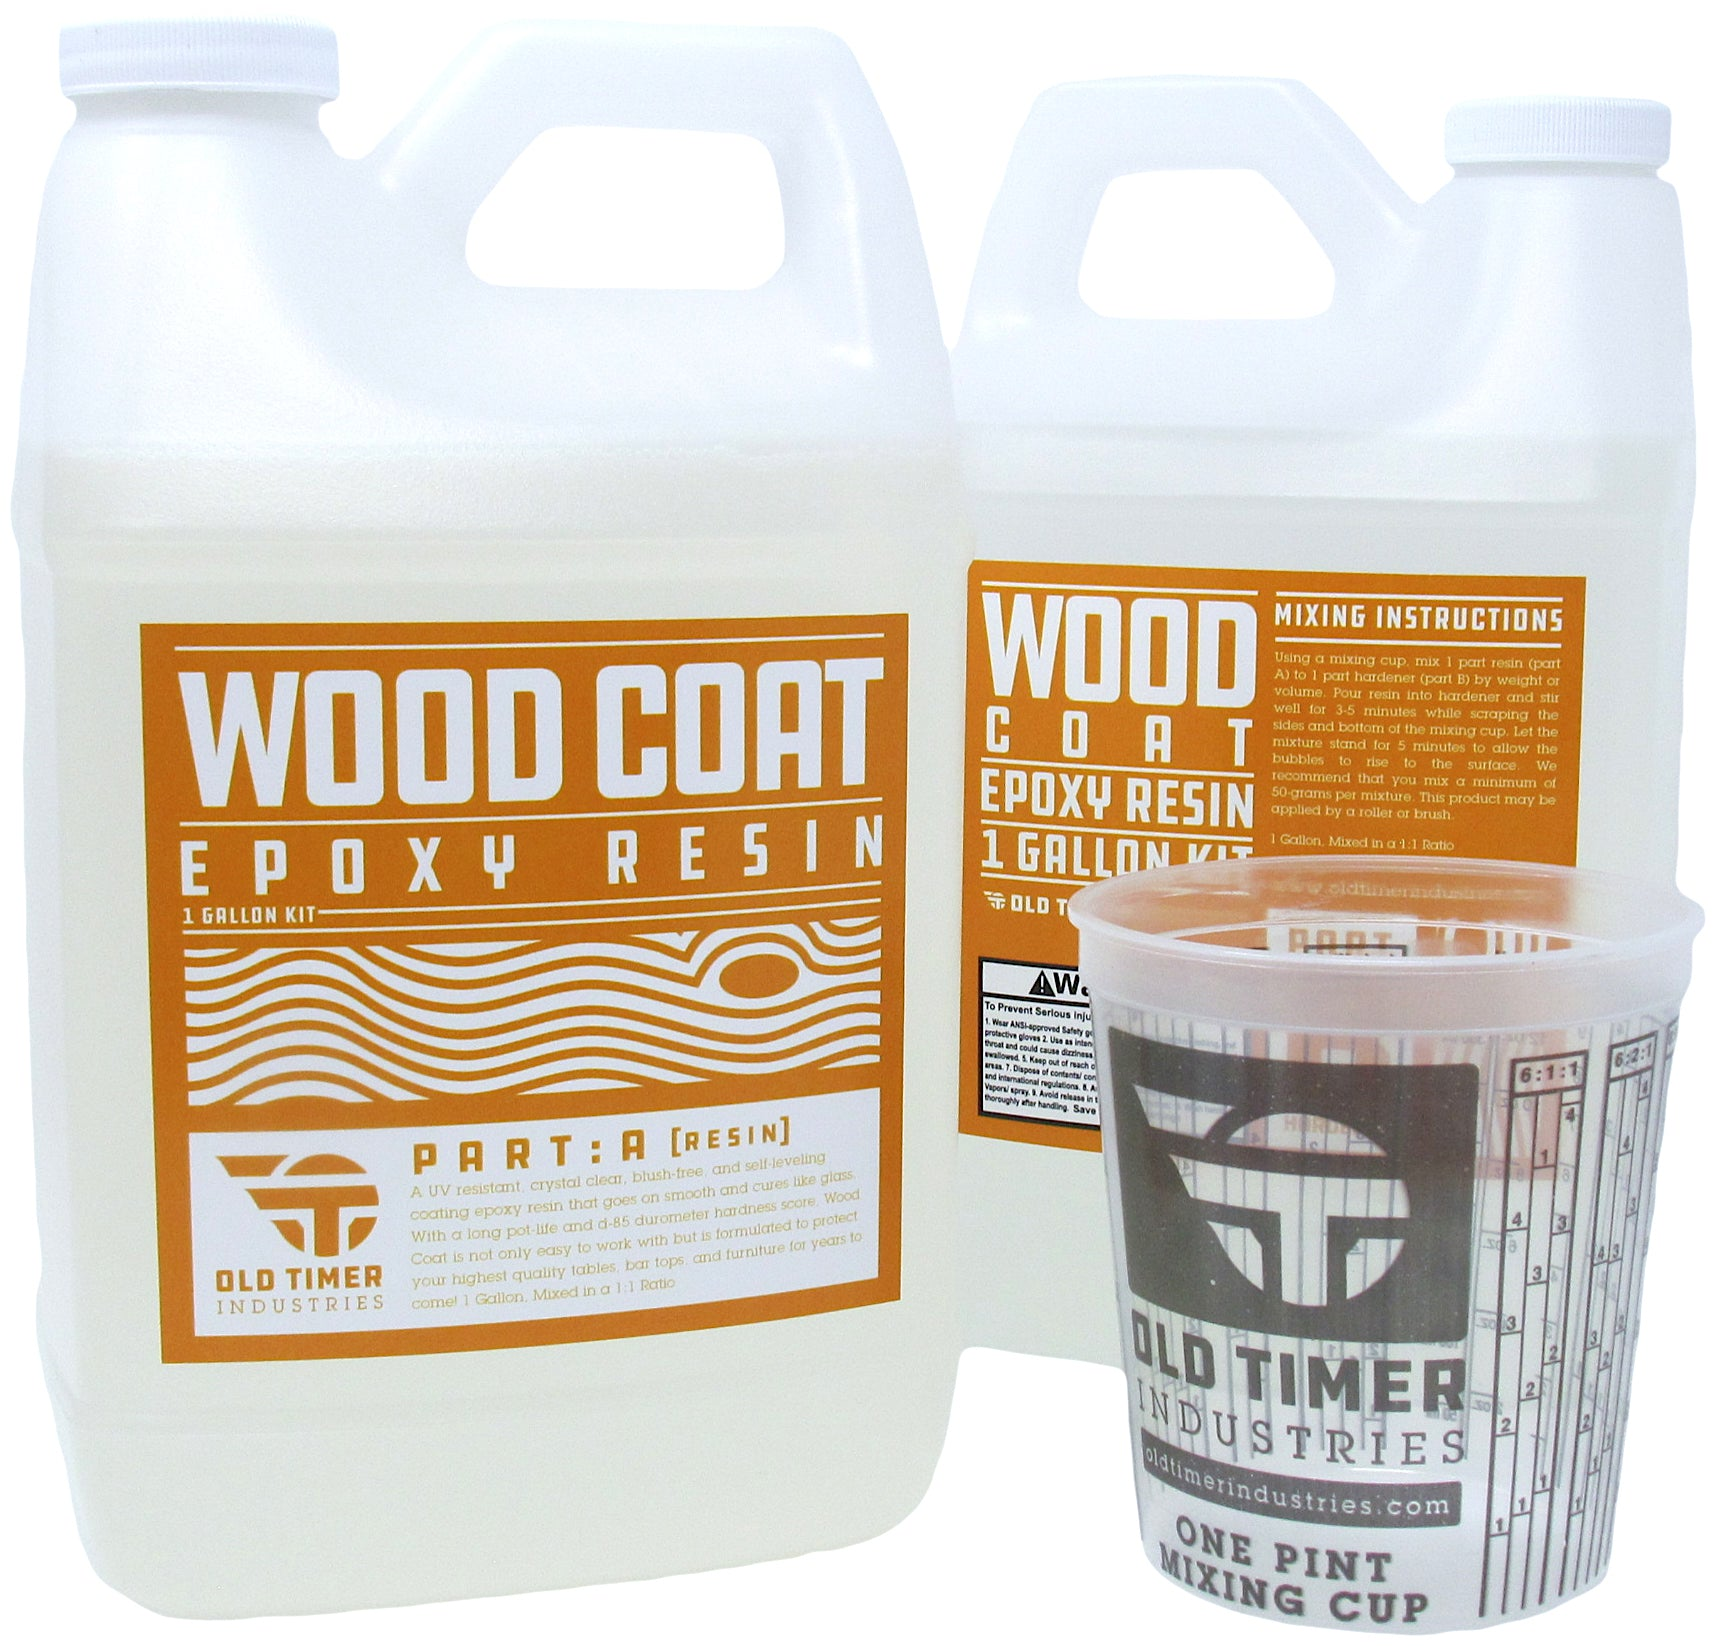 1 Gallon Kit, Wood Coat Clear Epoxy Resin for wood tabletop